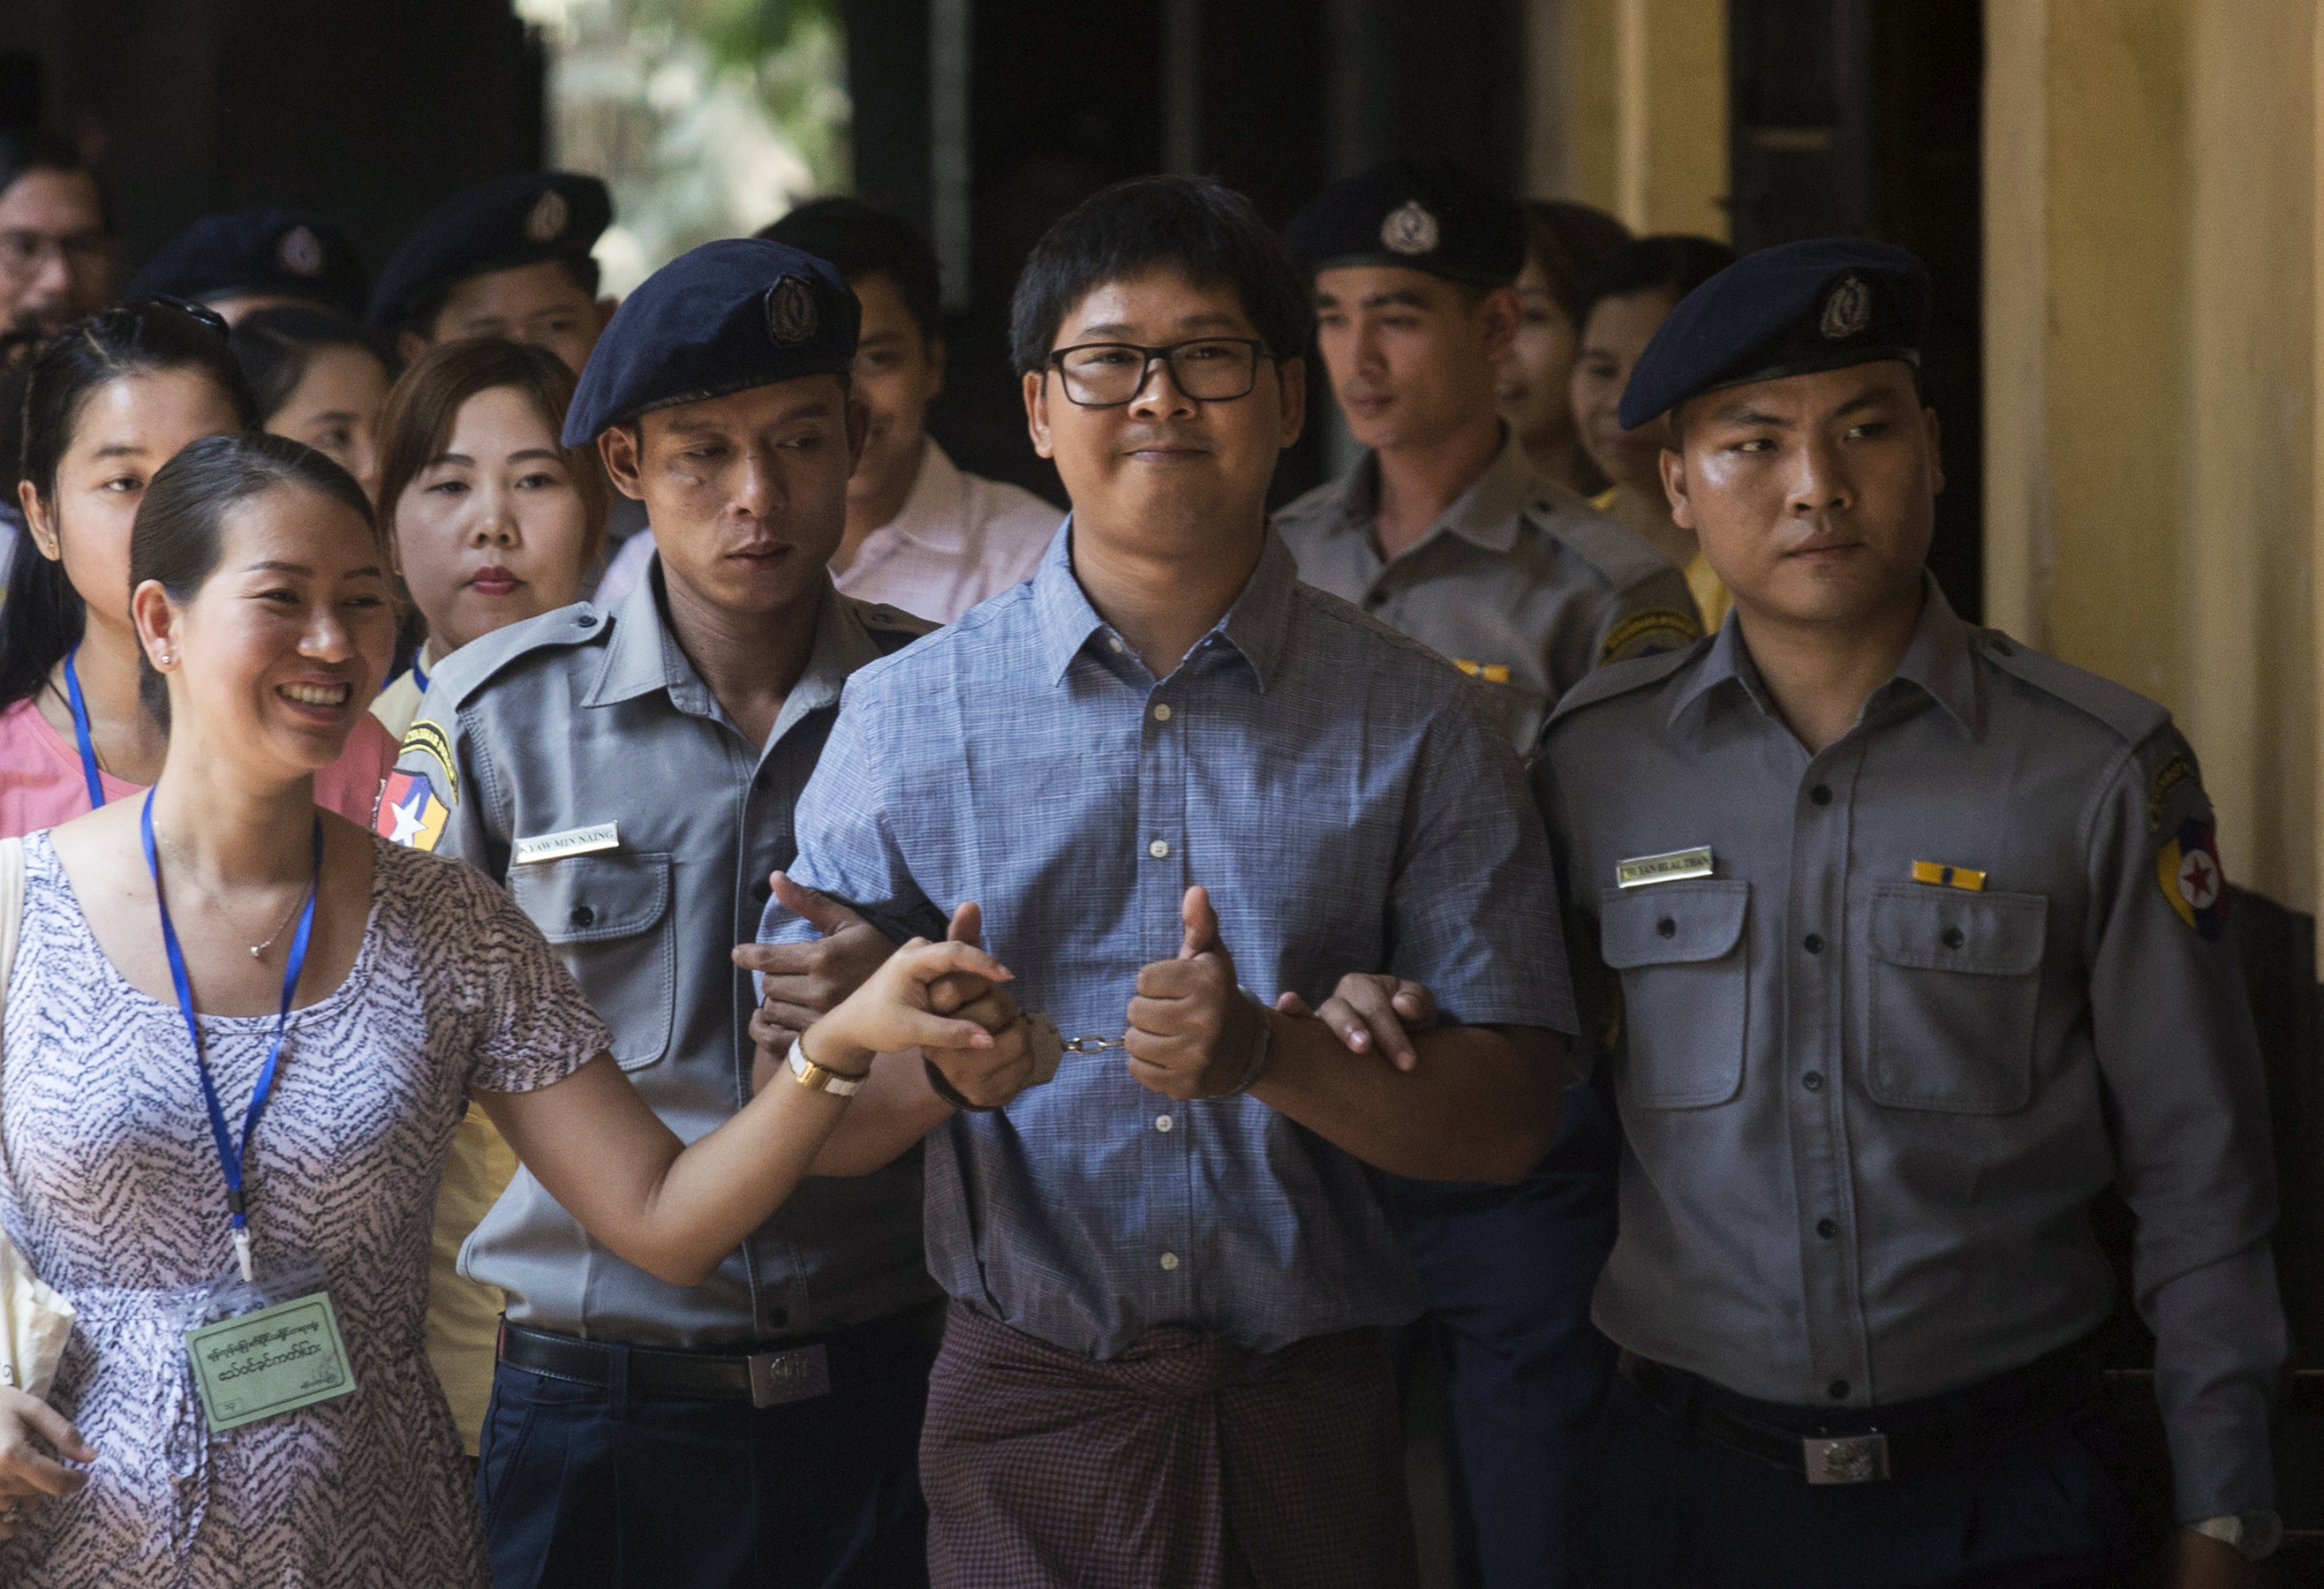 Detained Myanmar journalist Wa Lone arrives at court for his trial in Yangon on April 4, 2018.